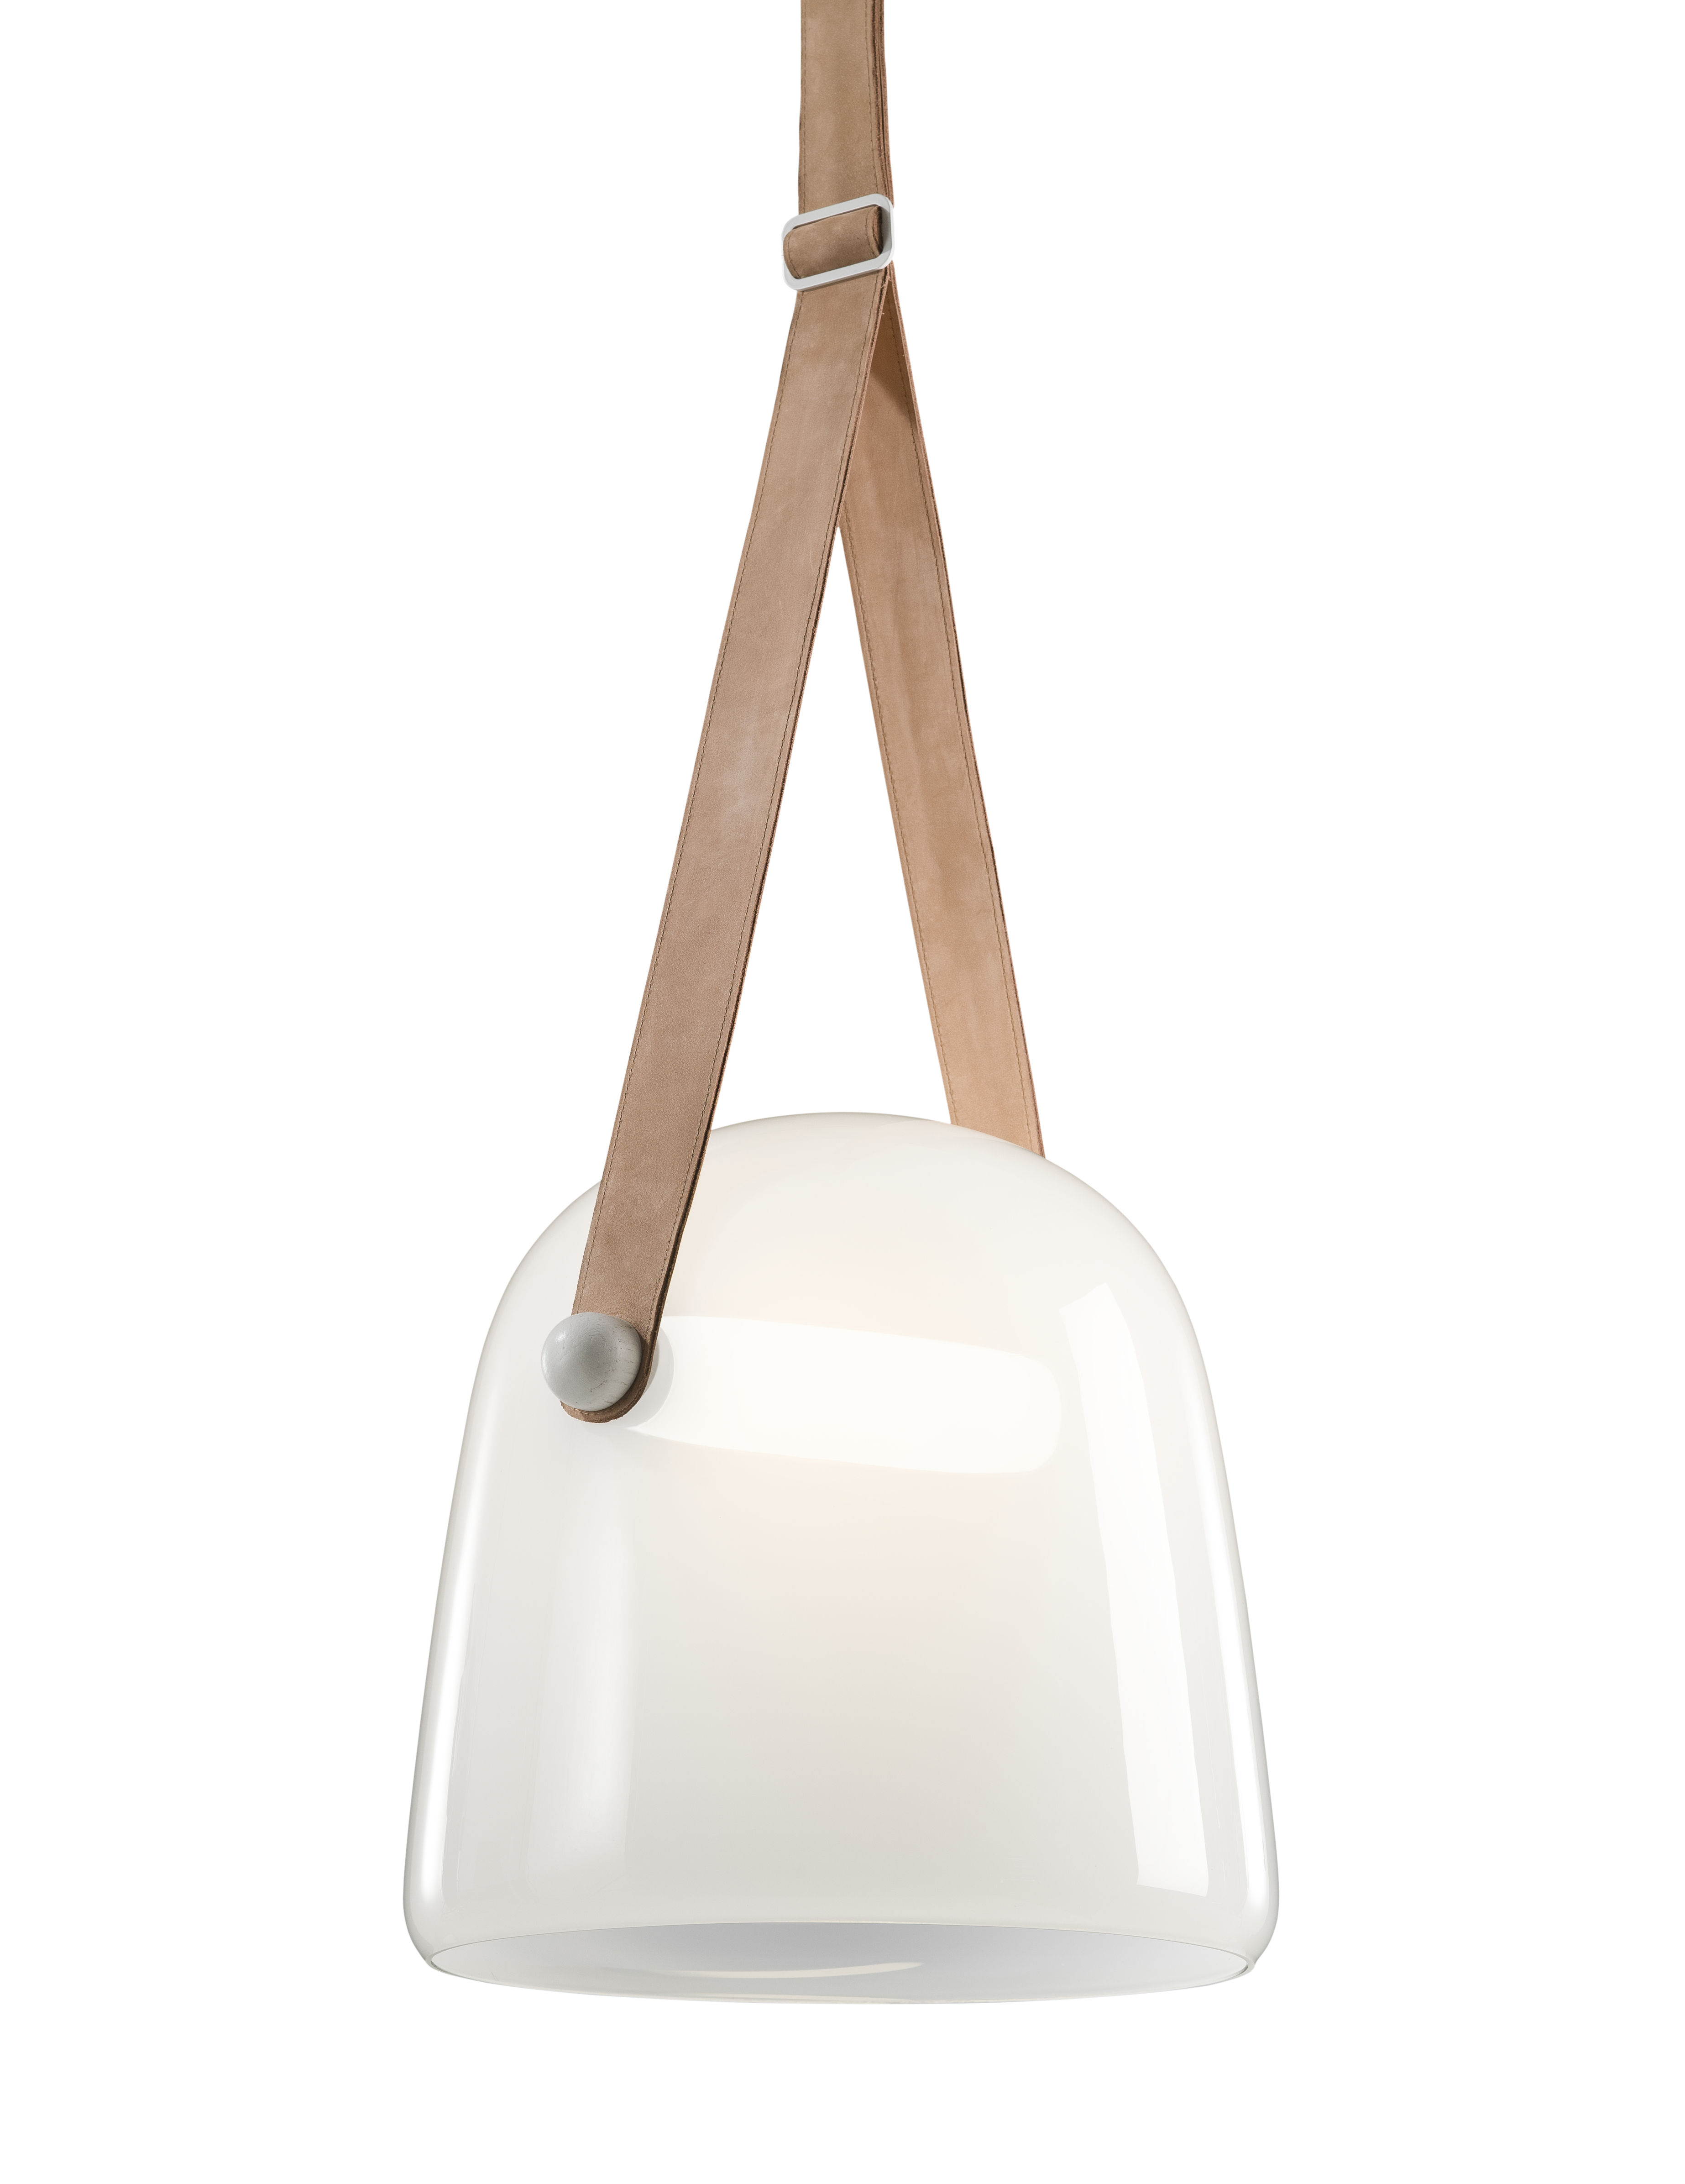 Lighting - Pendant Lighting - Mona Pendant - / Glass by Brokis - Opal white glass / Natural leather - Cuir naturel, Mouth blown glass, Tinted oak